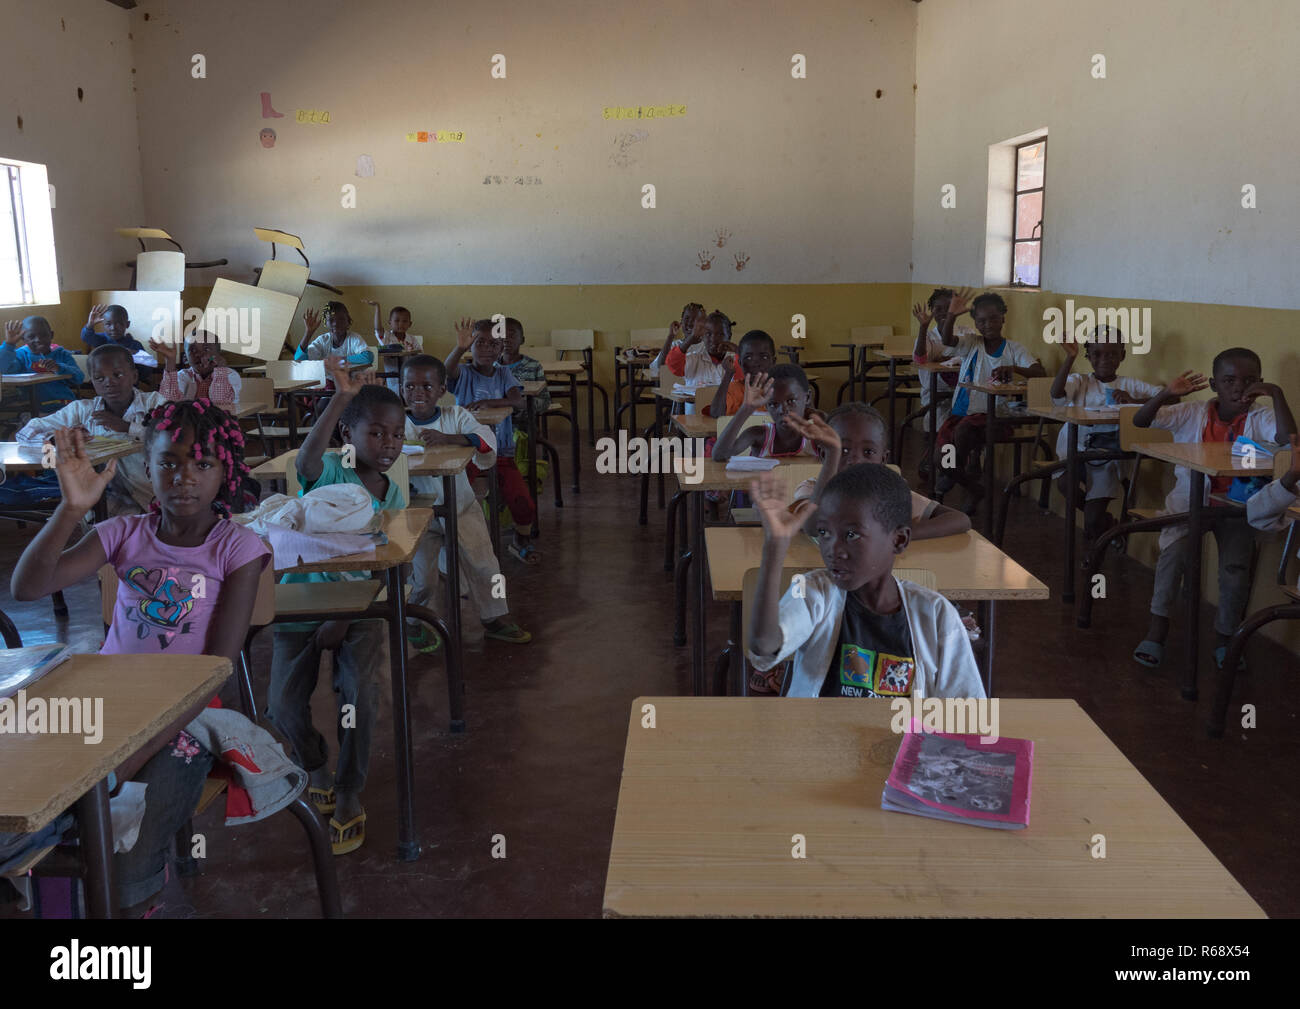 Children in a school waving their hand to welcome visitors, Namibe Province, Caraculo, Angola - Stock Image